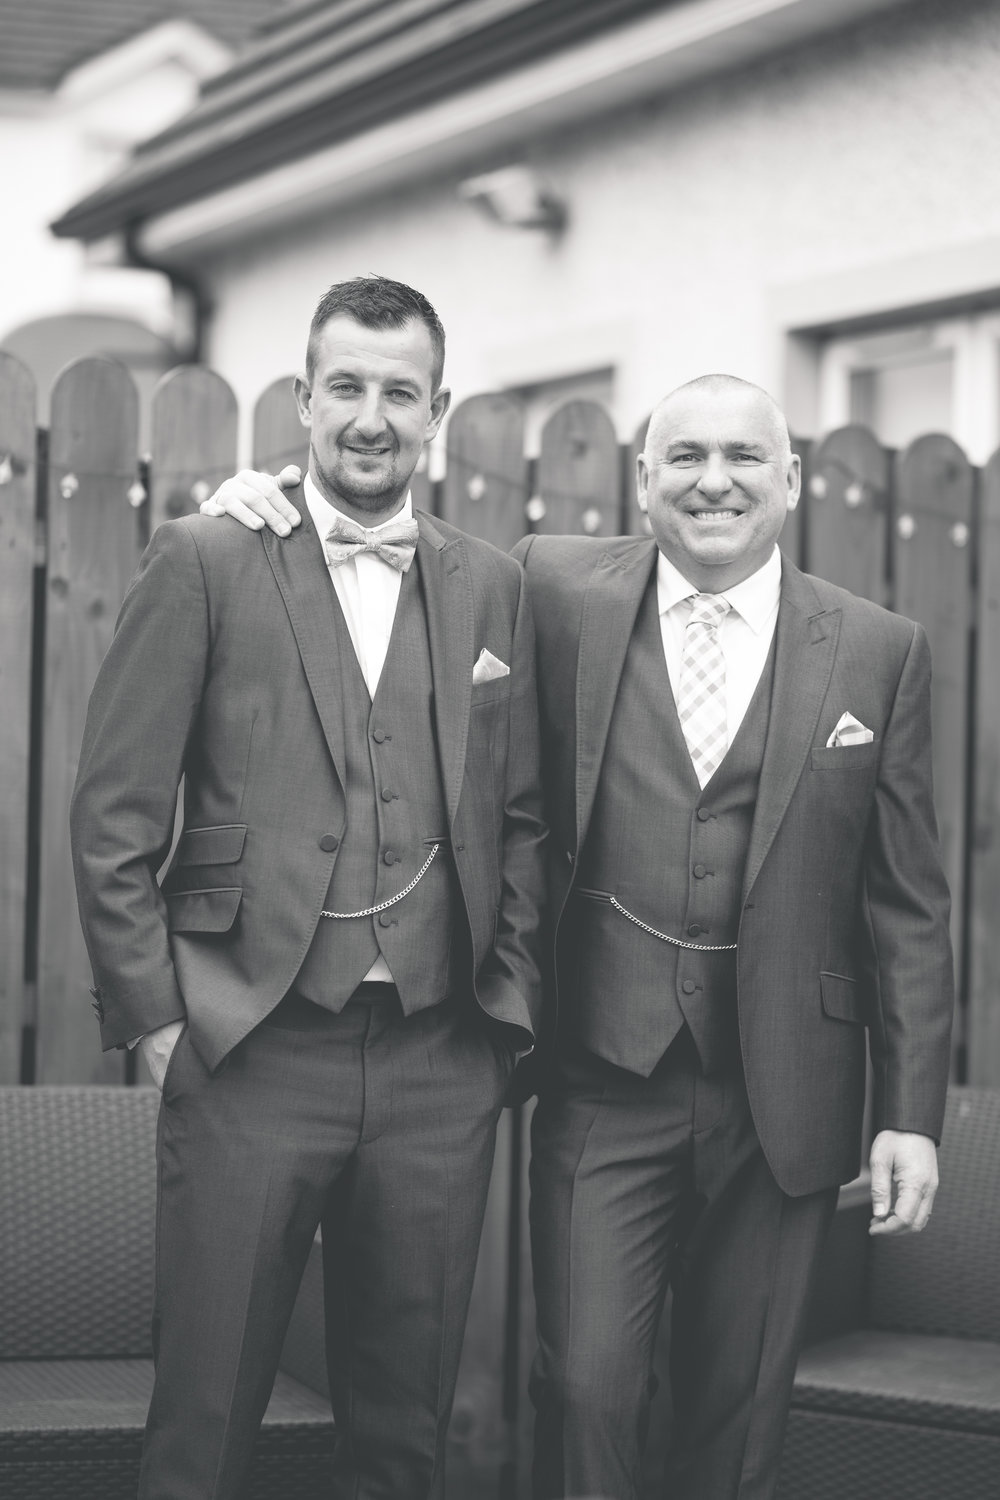 Antoinette & Stephen - Groom & Groomsmen | Brian McEwan Photography | Wedding Photographer Northern Ireland 54.jpg